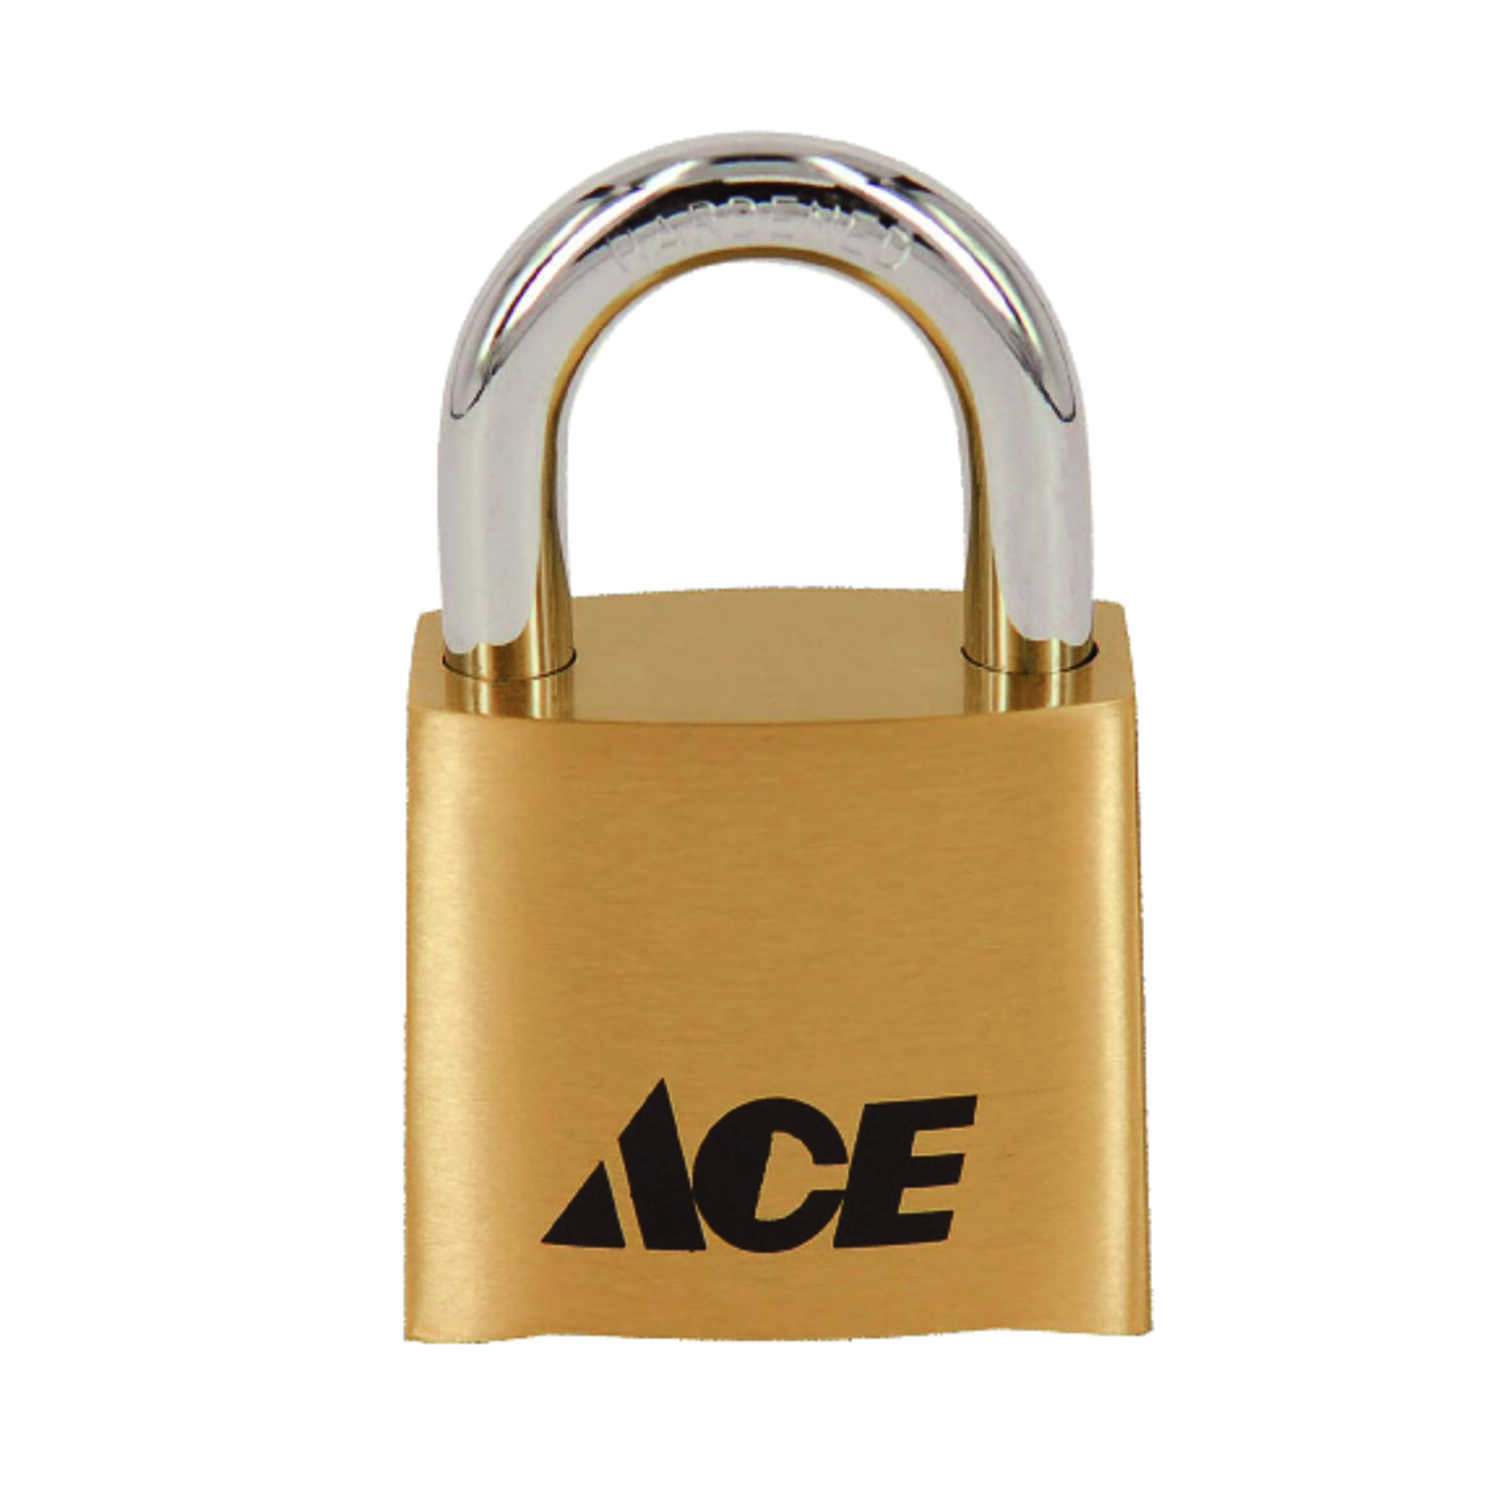 Ace  1-11/16 in. H x 1 in. W x 1-7/8 in. L Die Cast  4-Dial Combination  Padlock  1 pk